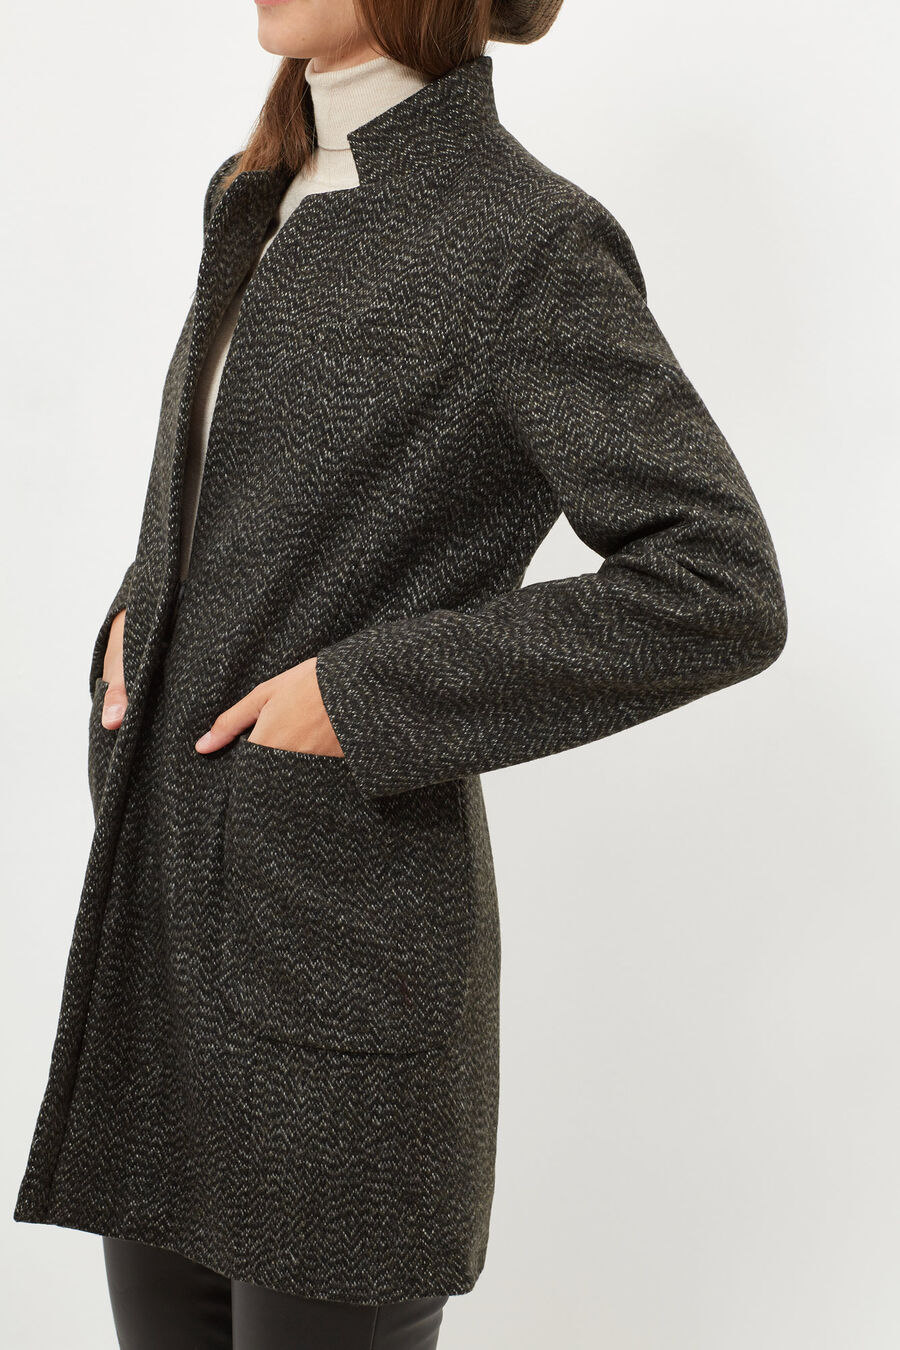 Masculine Tweed cut